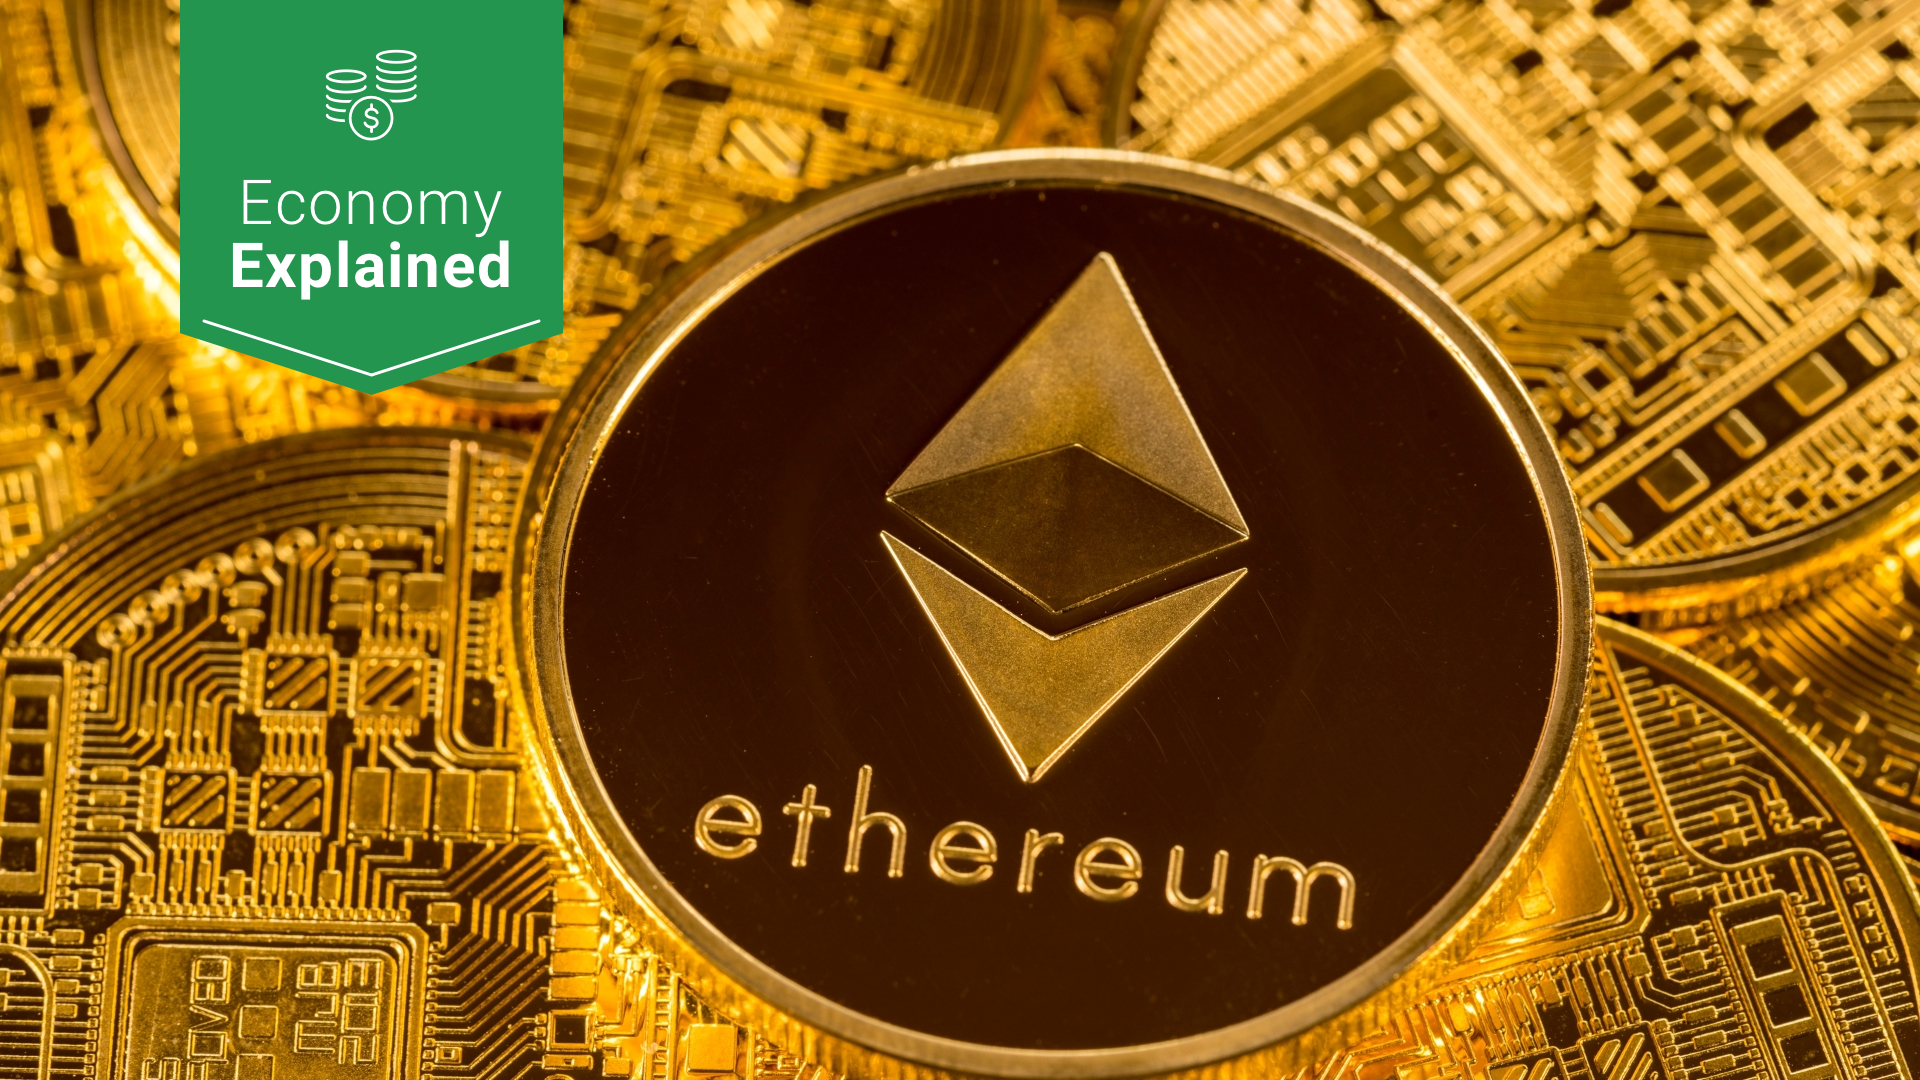 Ethereum Price Surge — All You Need To Know To Decide If It's Worth the Investment